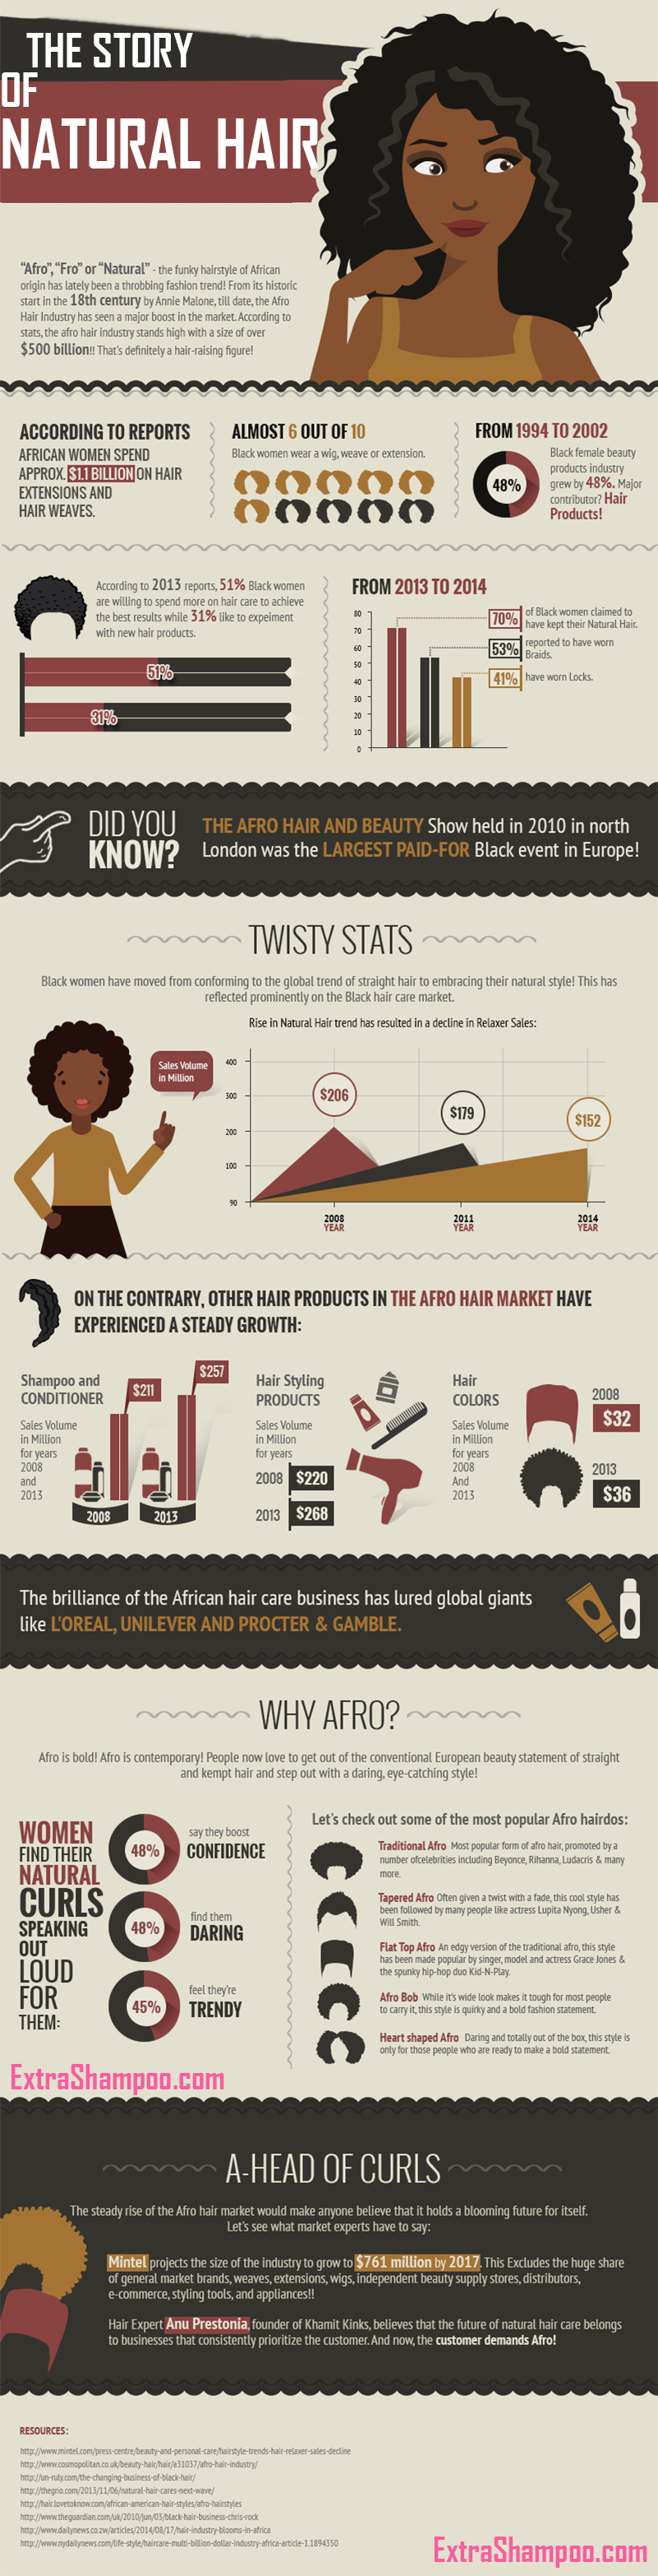 the-story-of-natural-hair1